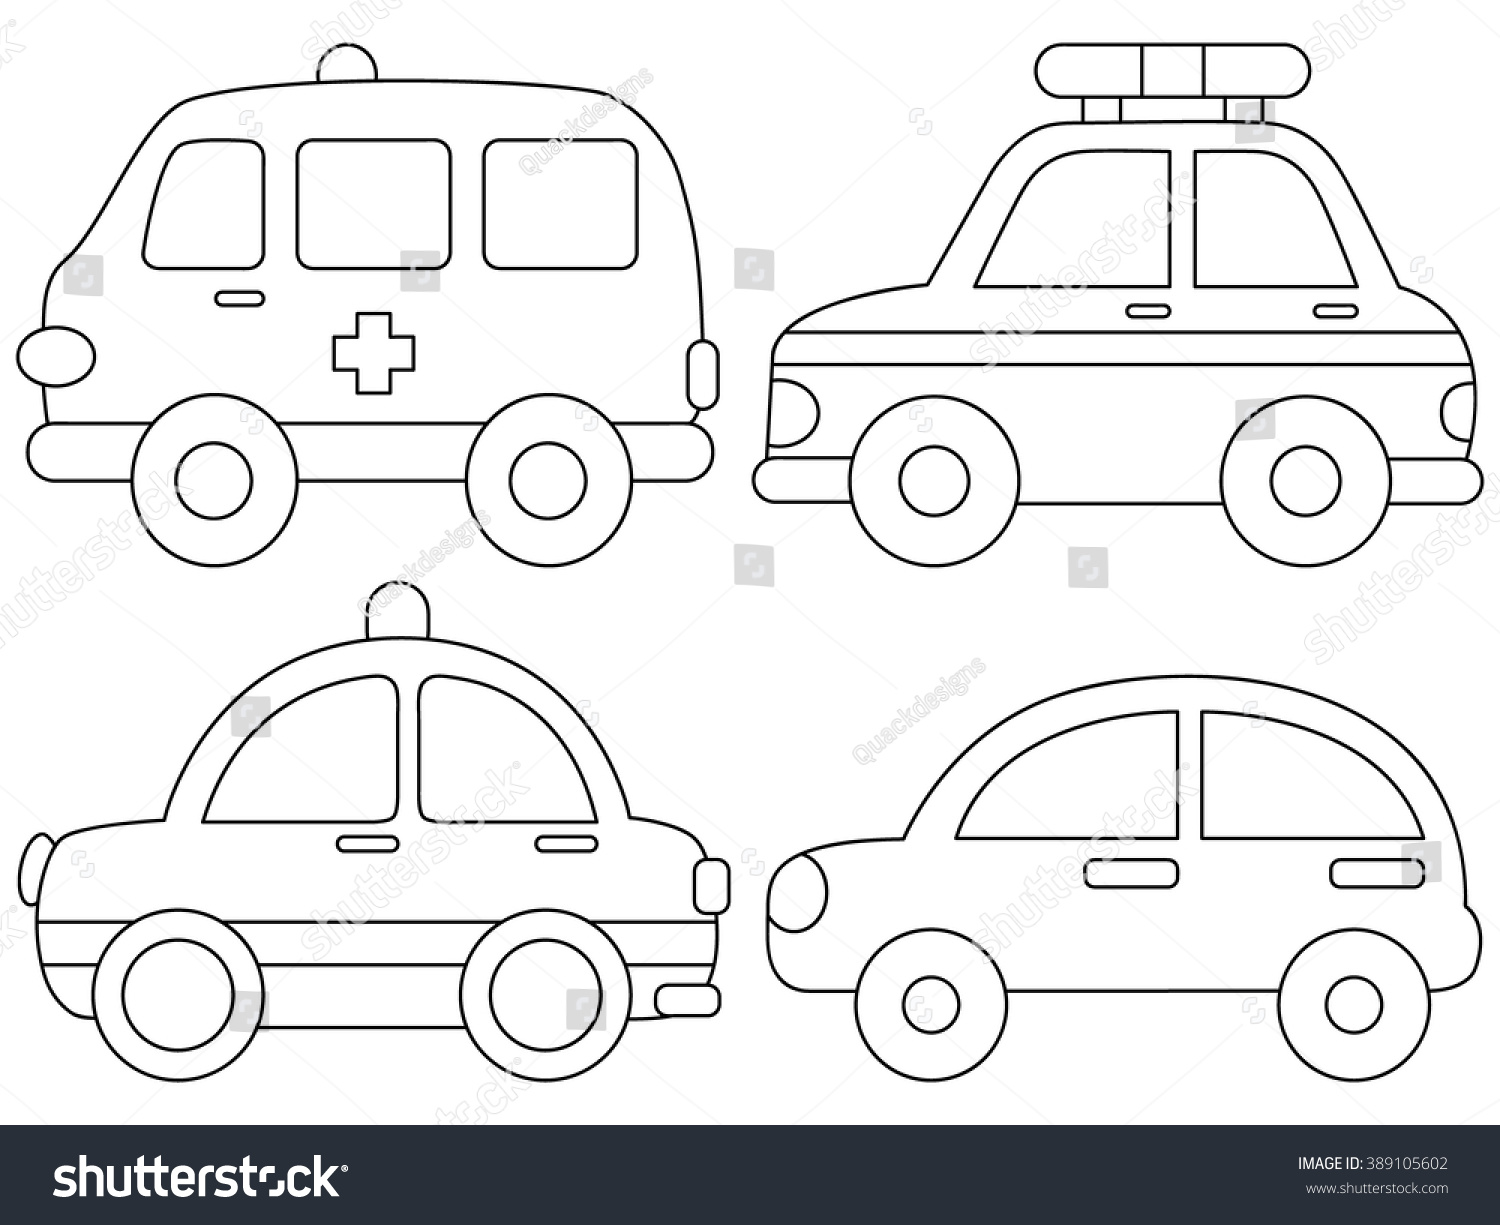 Set Cute Car Coloring Page Illustration Stock Vector 389105602